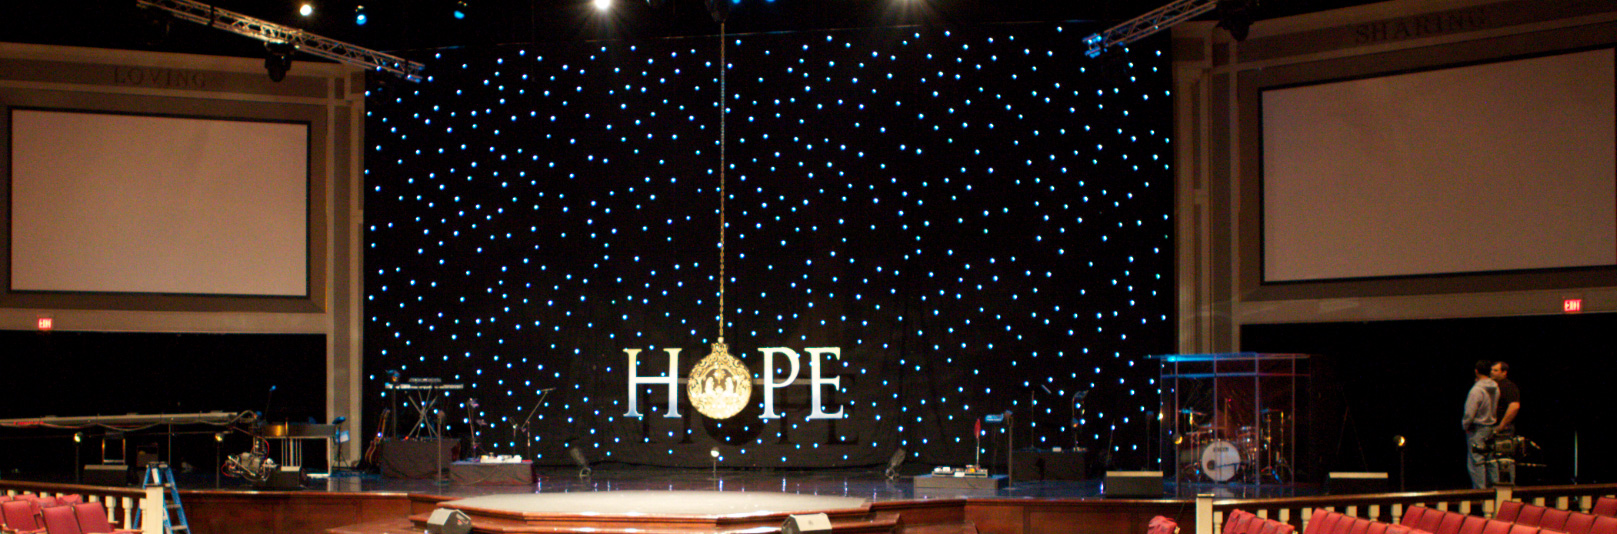 Dangling-Hope-Stage-Design-Idea.jpg